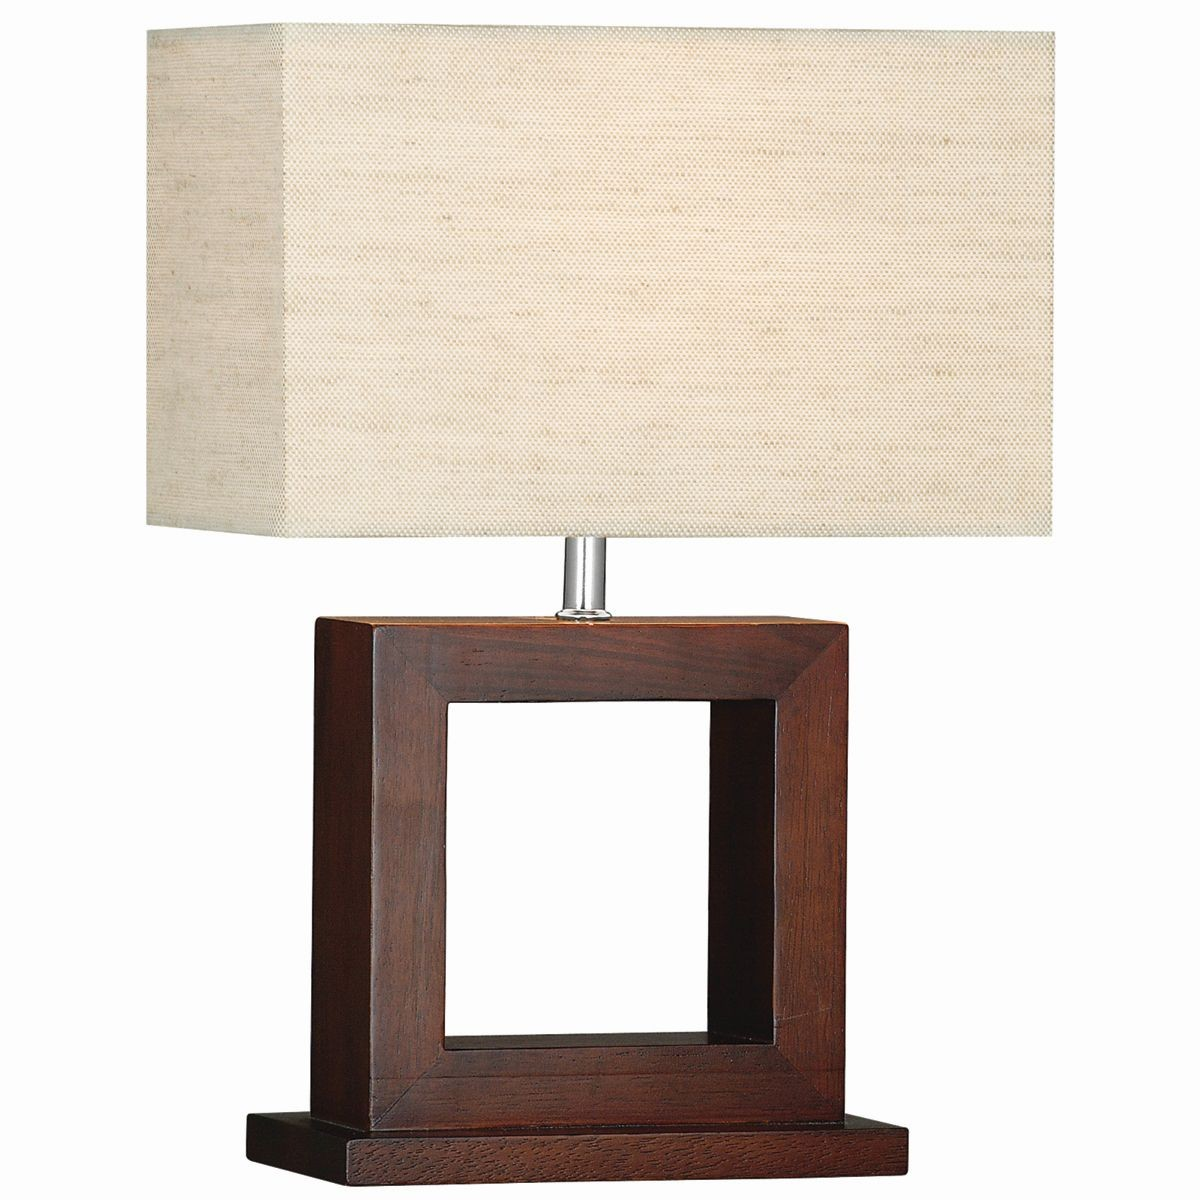 Cosmopolitan Table Lamp Solid Wood